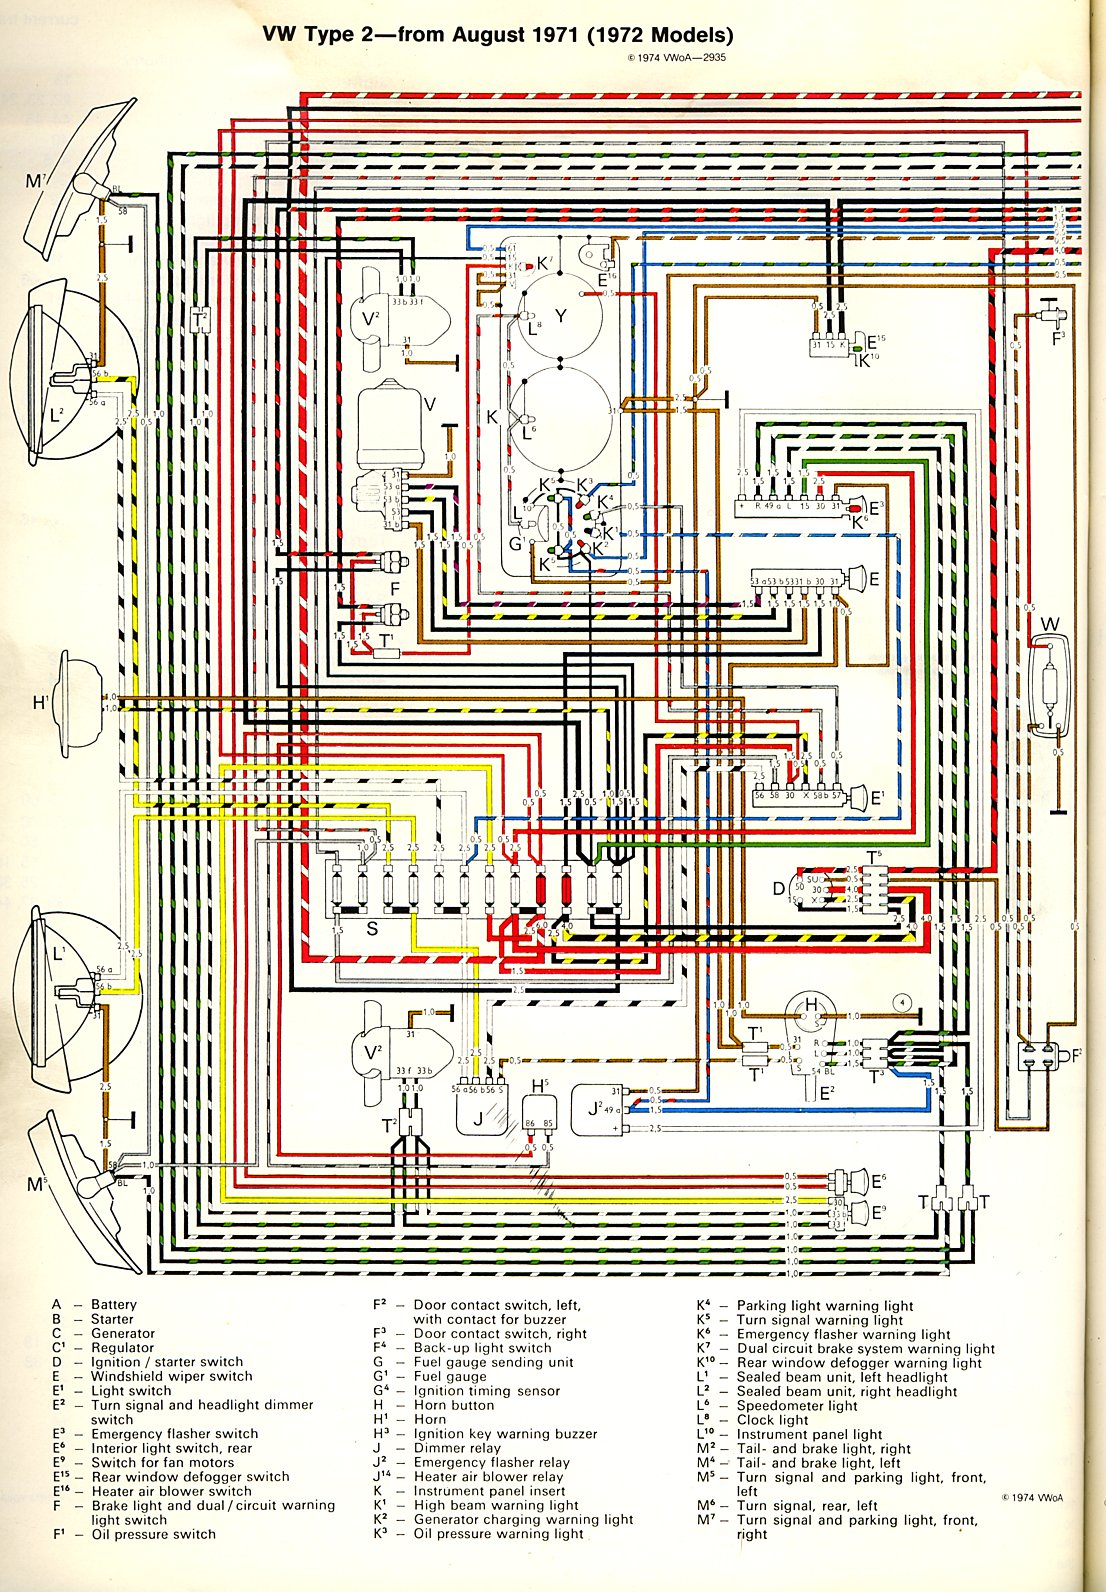 baybus_72a 1972 bus wiring diagram thegoldenbug com 74 vw bus wiring diagram at nearapp.co